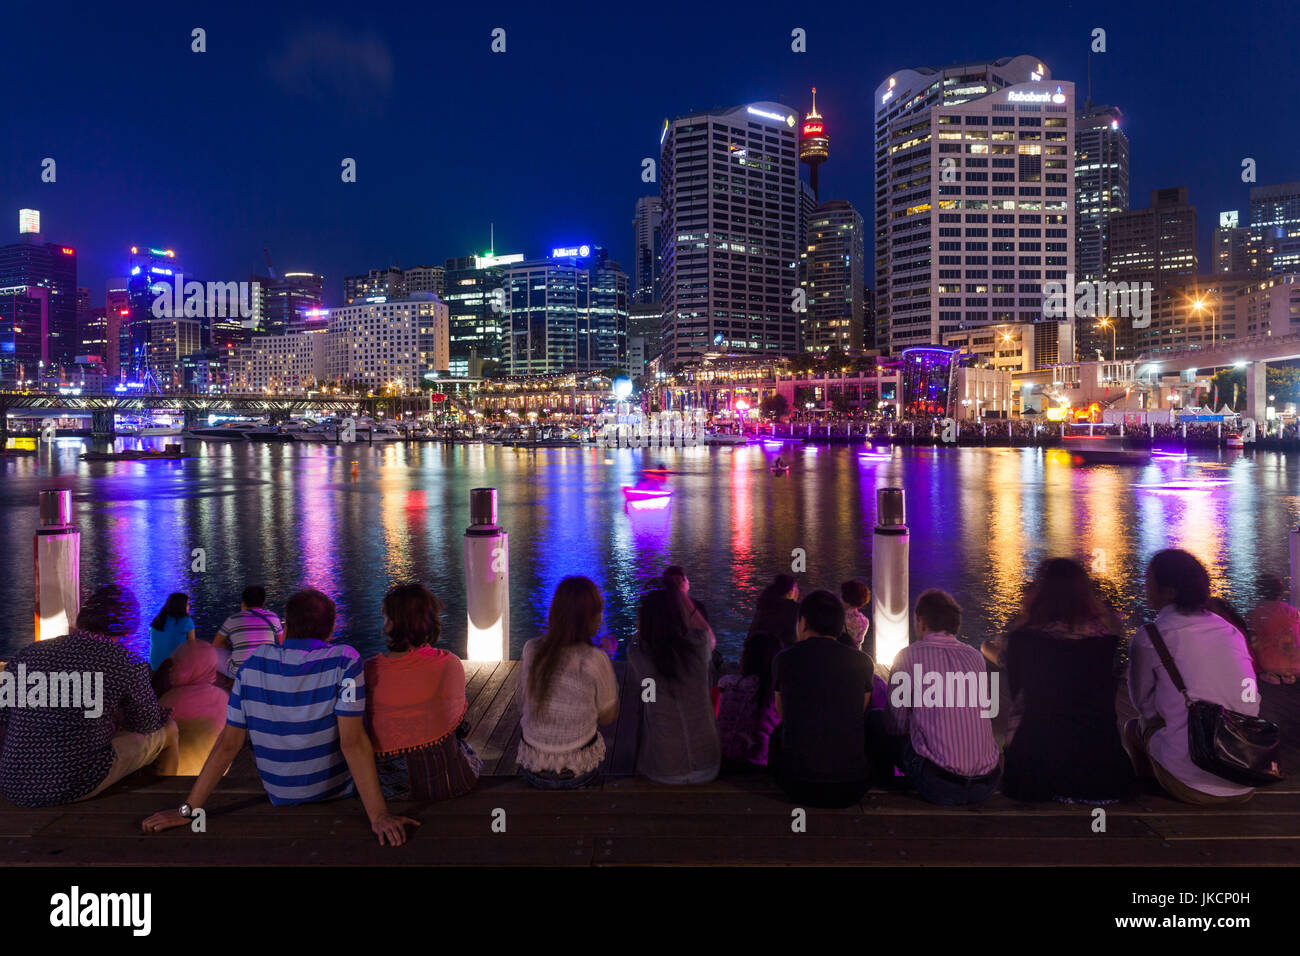 Australia, New South Wales, NSW, Sydney, Darling Harbour, evening, crowds - Stock Image